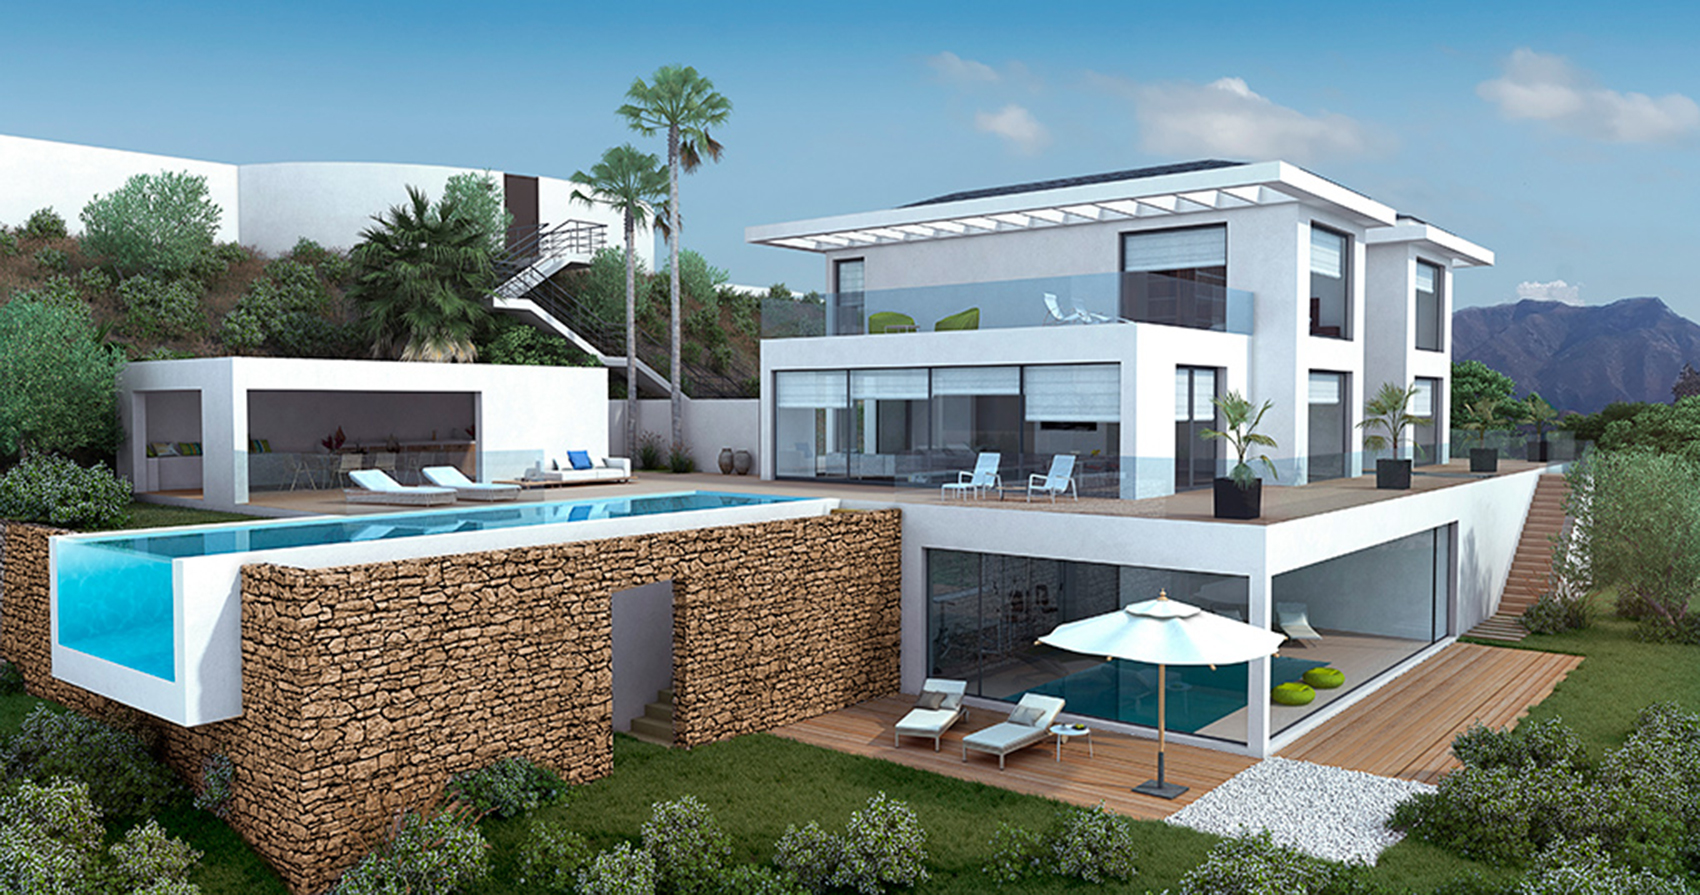 Fantastic Luxury Villa Project in the world famous La Zagaleta private golf resort.